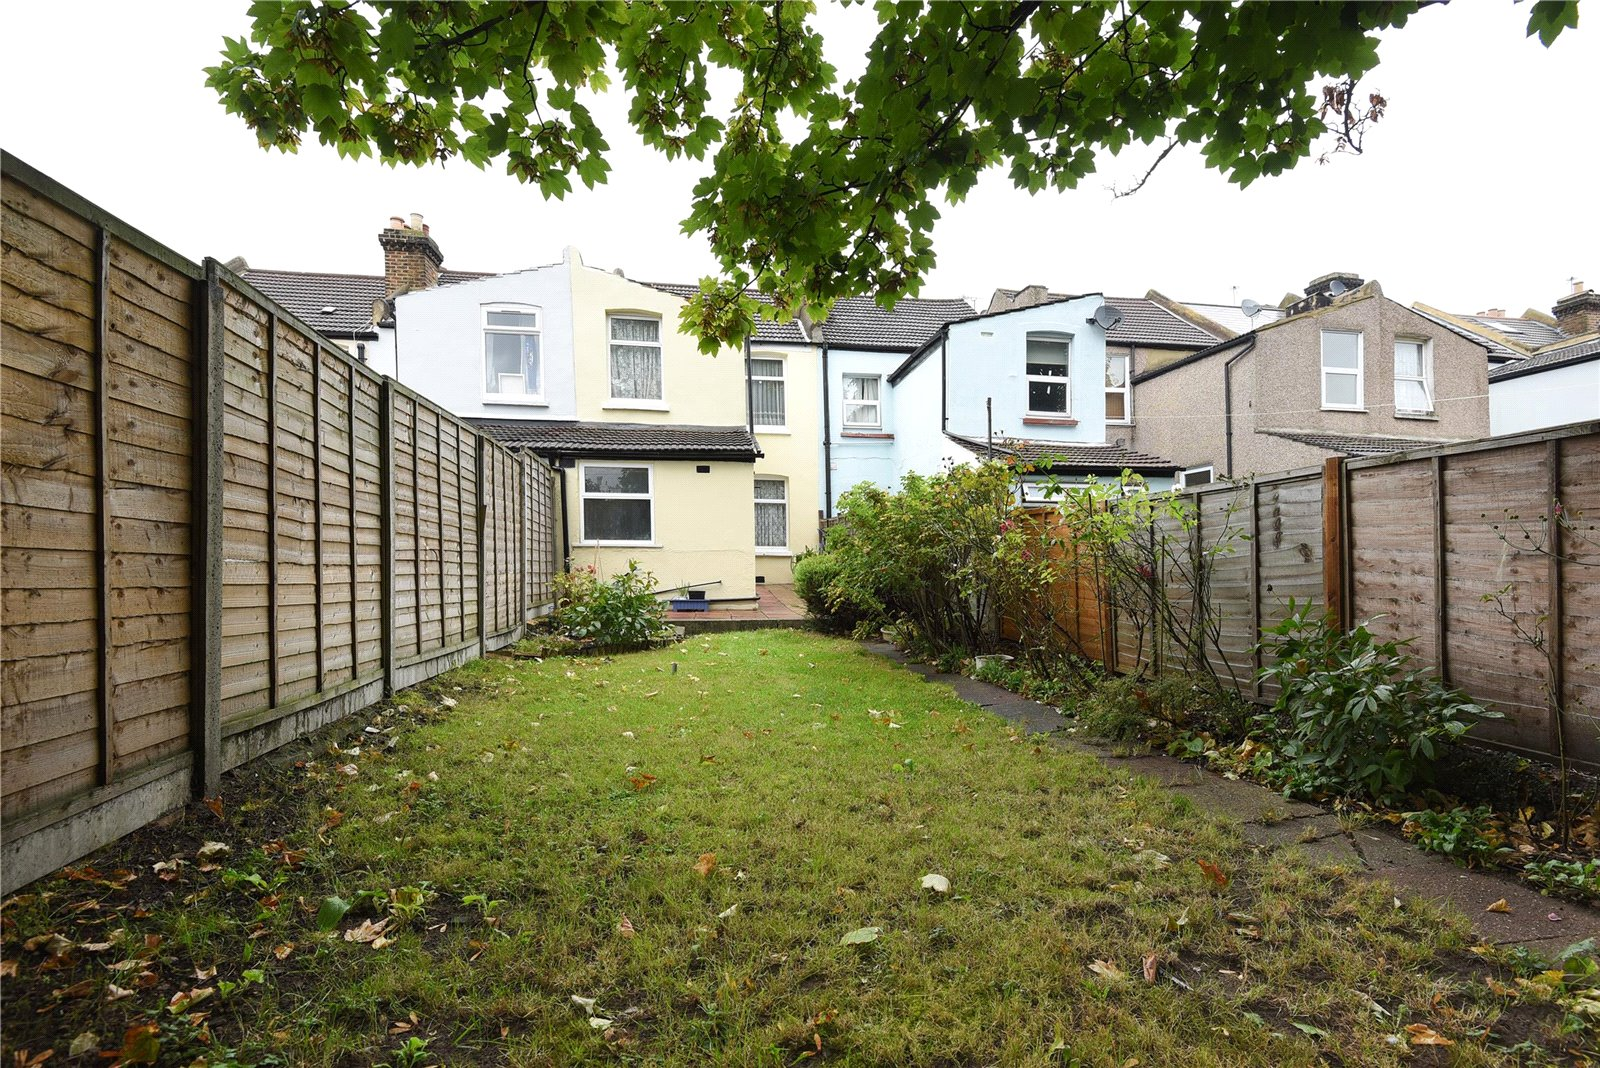 3 bed house for sale in Thornton Heath 3